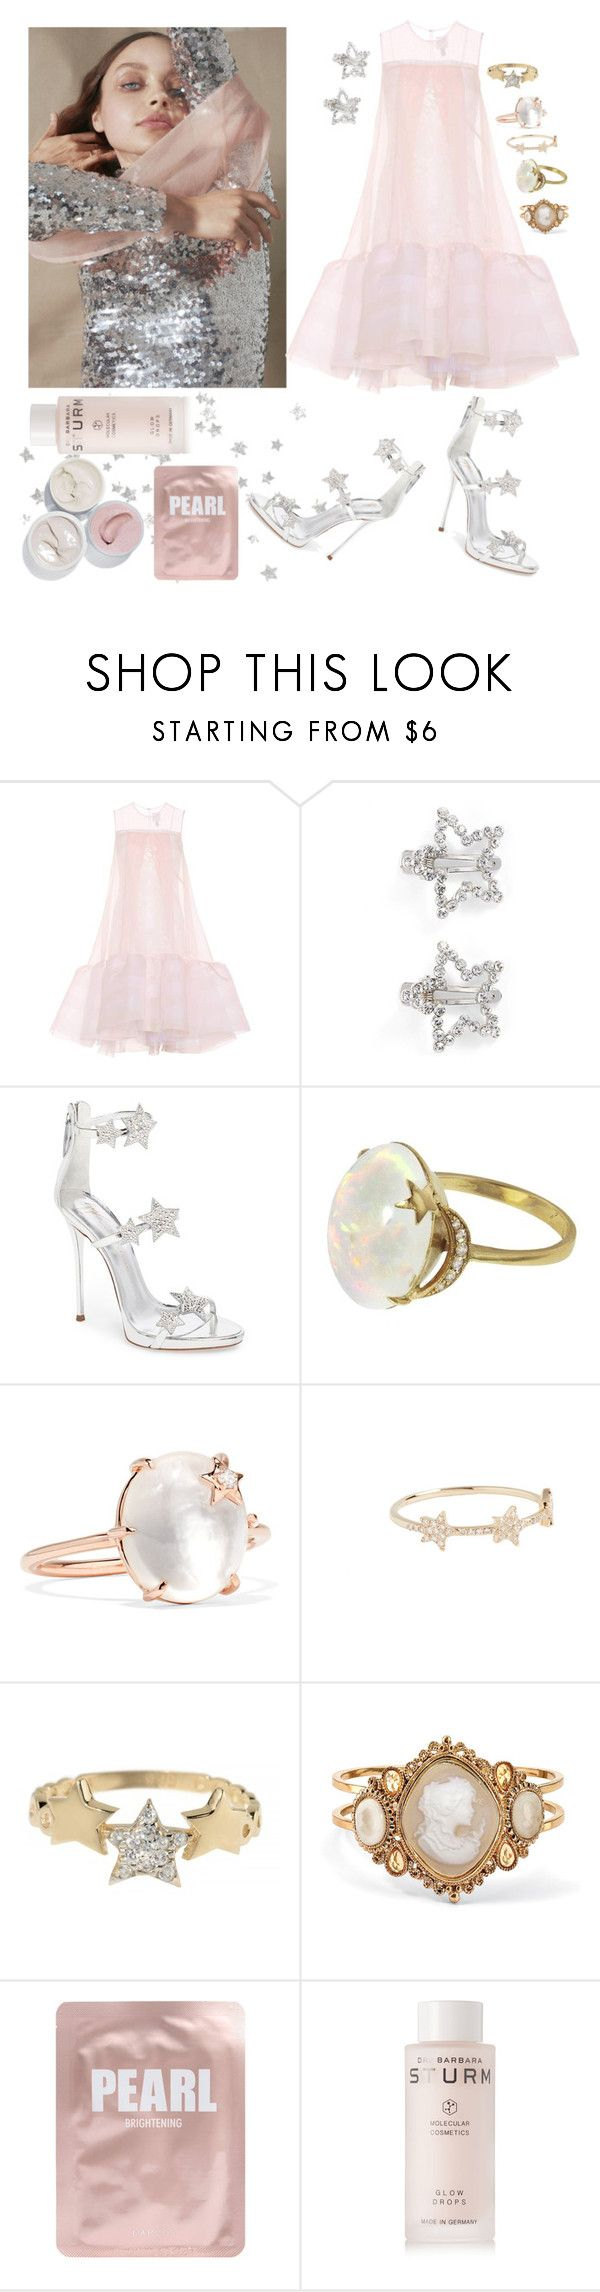 """""""starlet"""" by angelles ❤ liked on Polyvore featuring Somewhere Nowhere, HUISHAN ZHANG, Tasha, Giuseppe Zanotti, Andrea Fohrman, EF Collection, Talia Naomi, Palm Beach Jewelry, Lapcos and Dr. Barbara Sturm"""